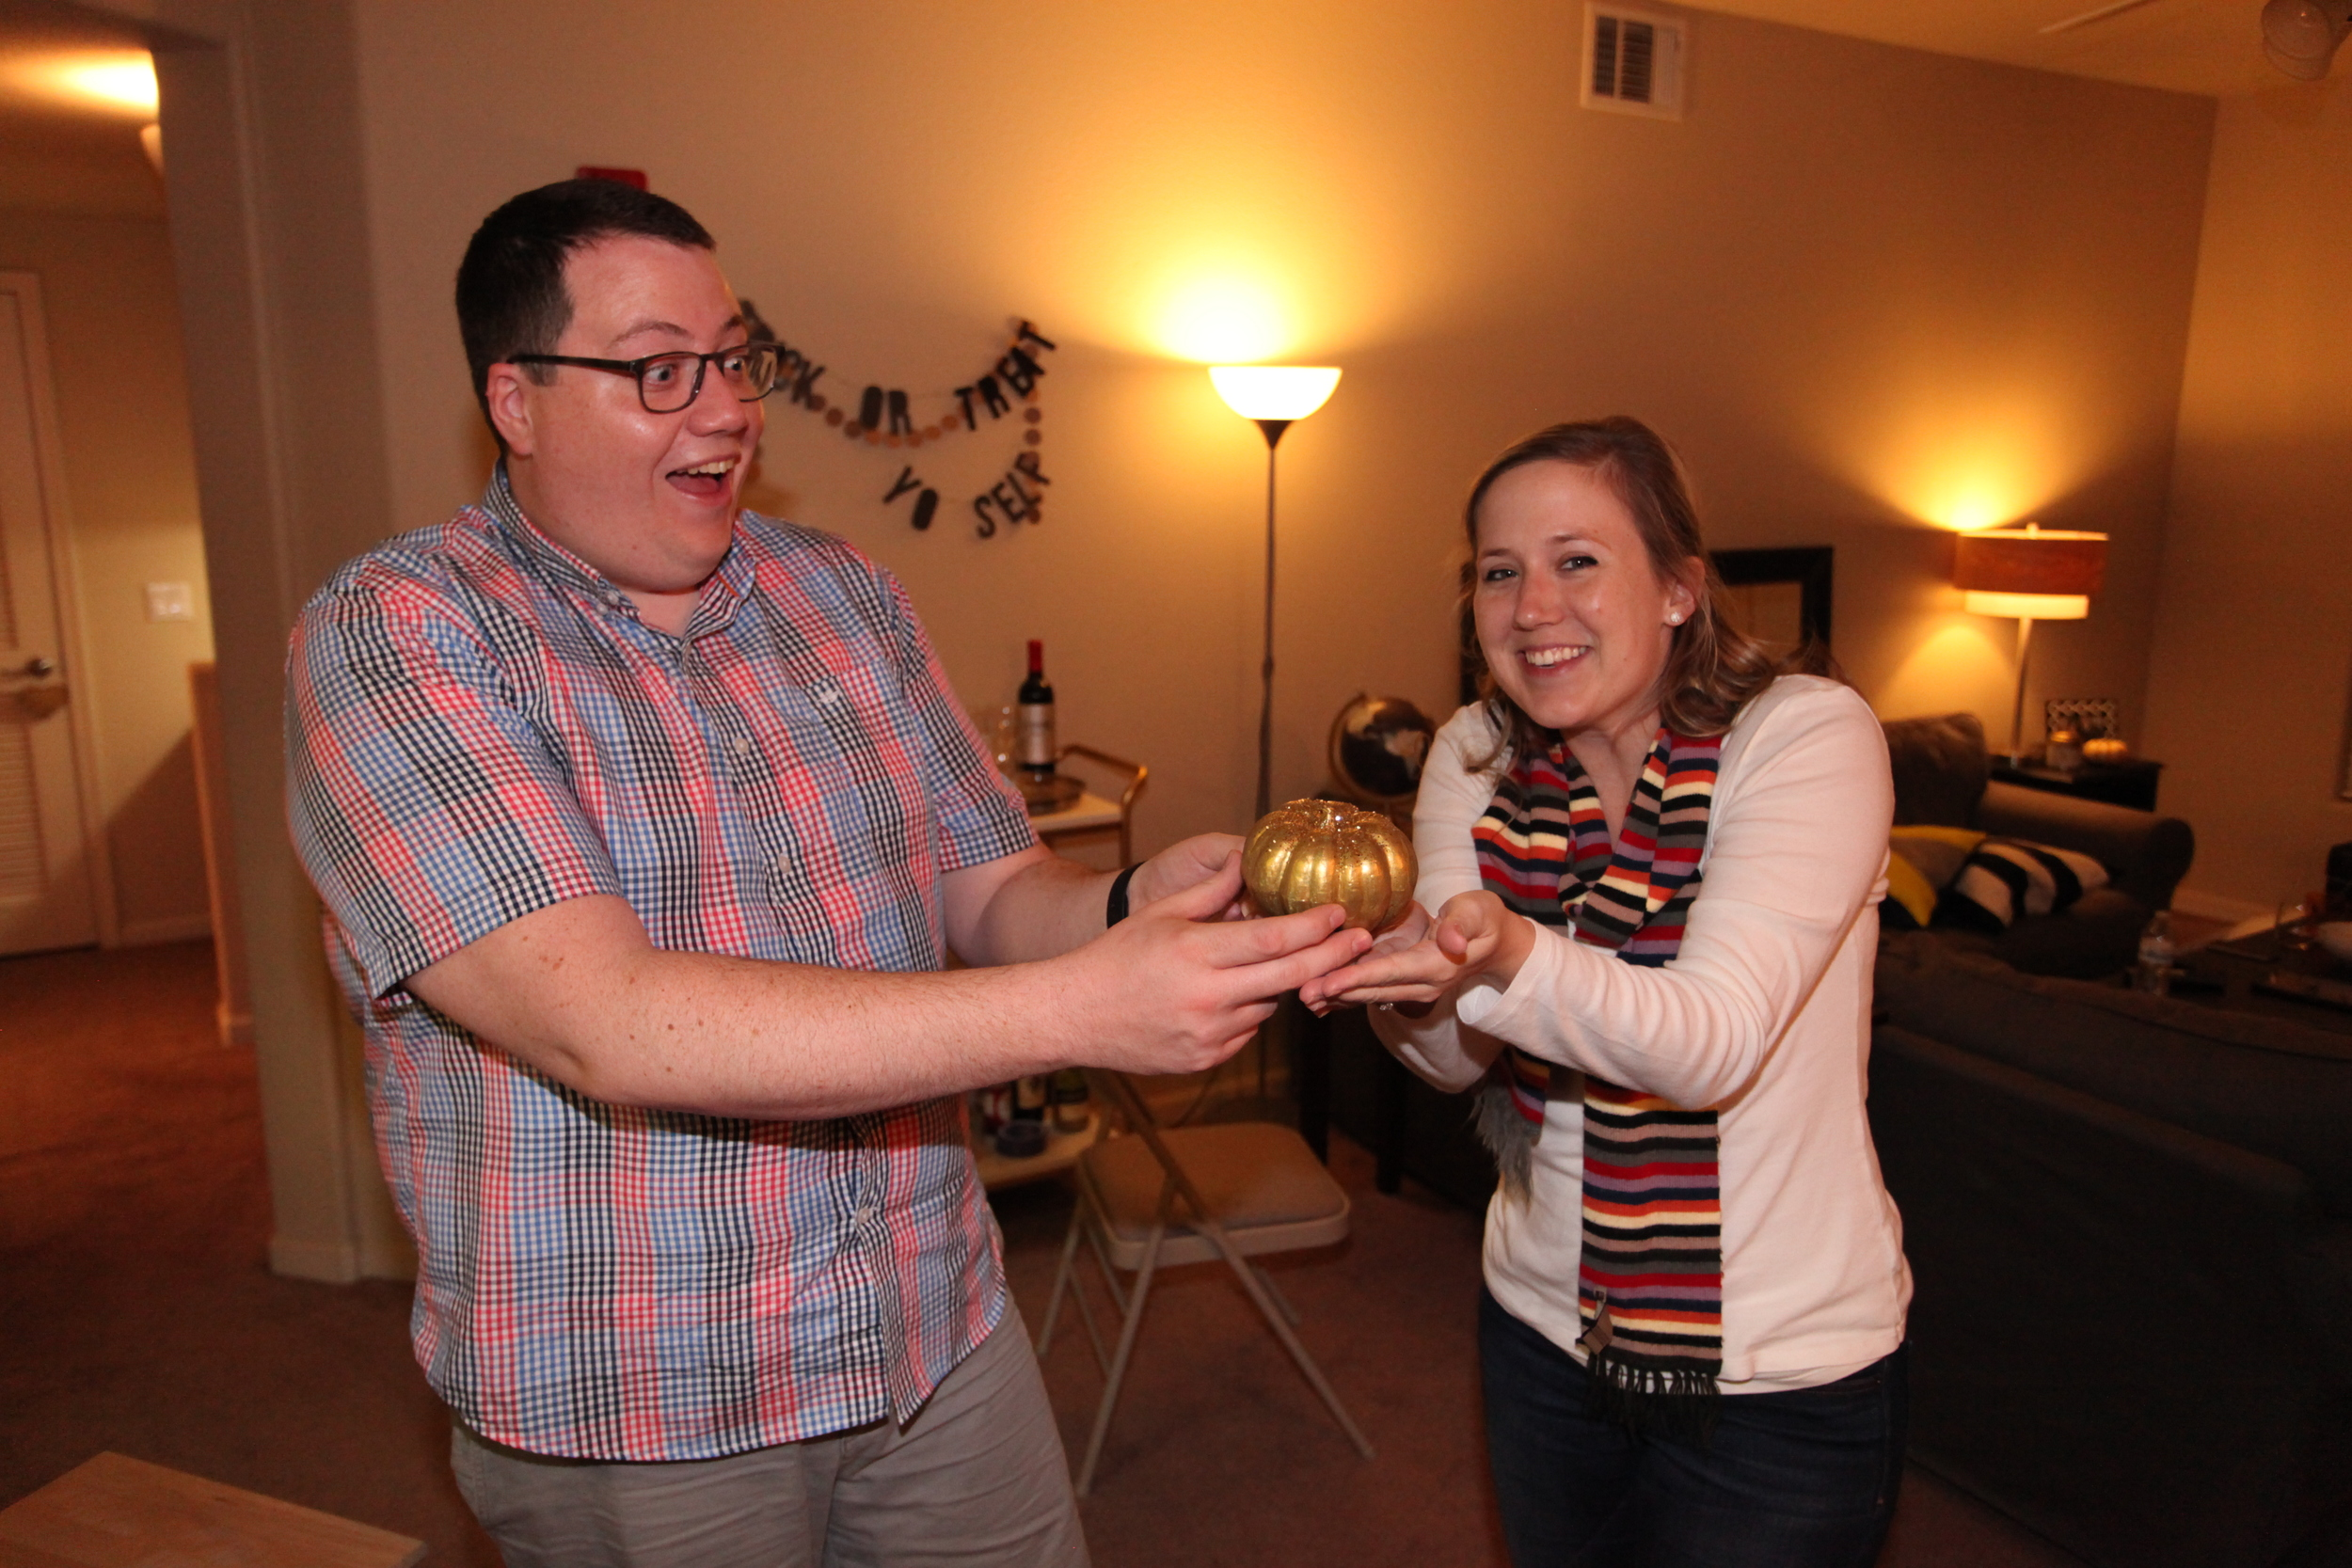 The winners of the crowdsourced voting sharing their golden trophy pumpkin!